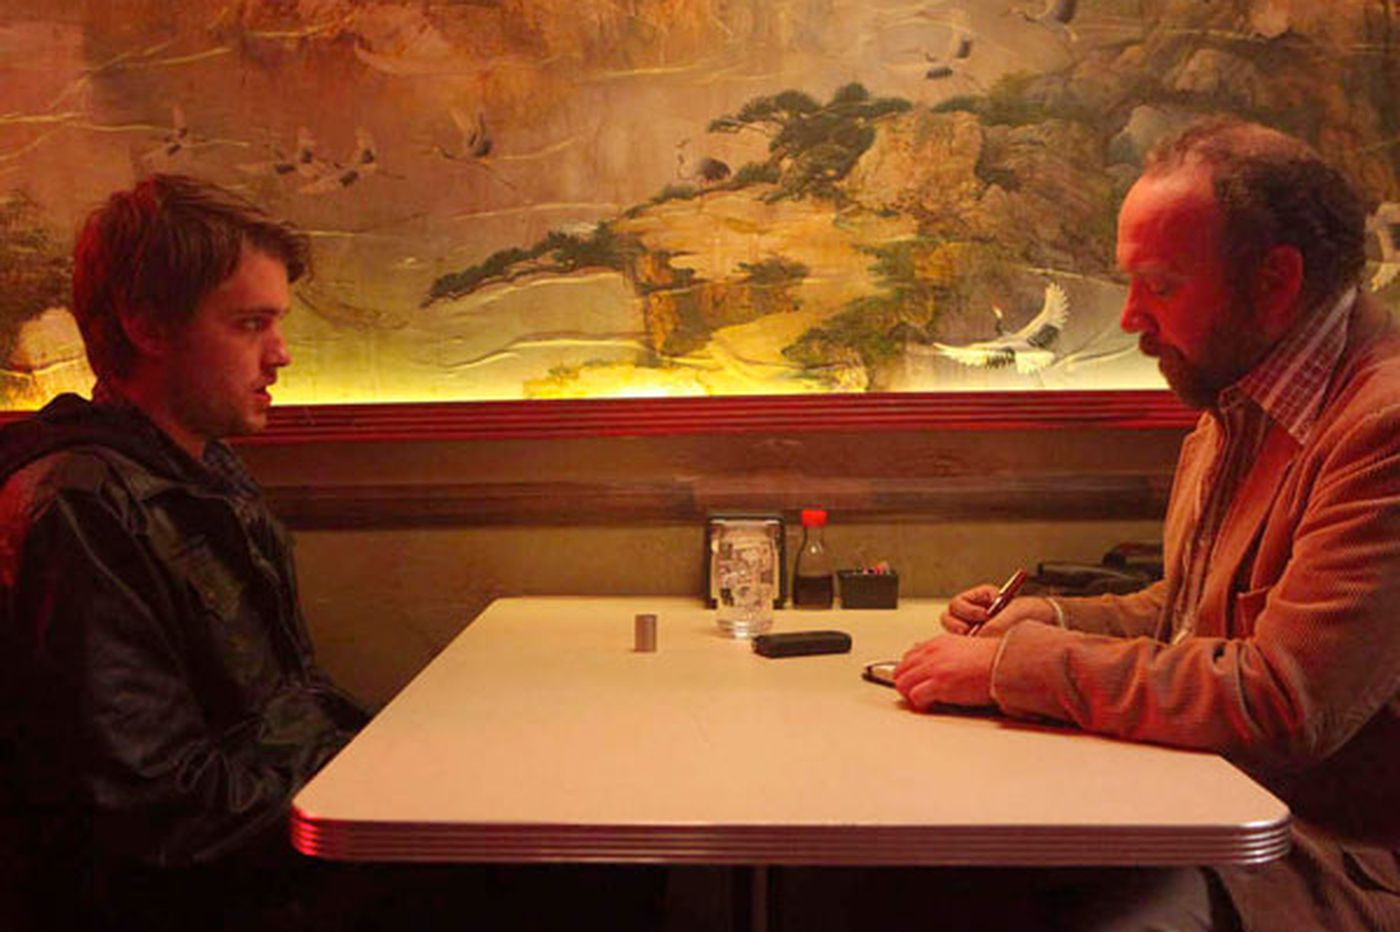 'John Dies at the End': Loopy, icky sci-fi with crazy soy sauce